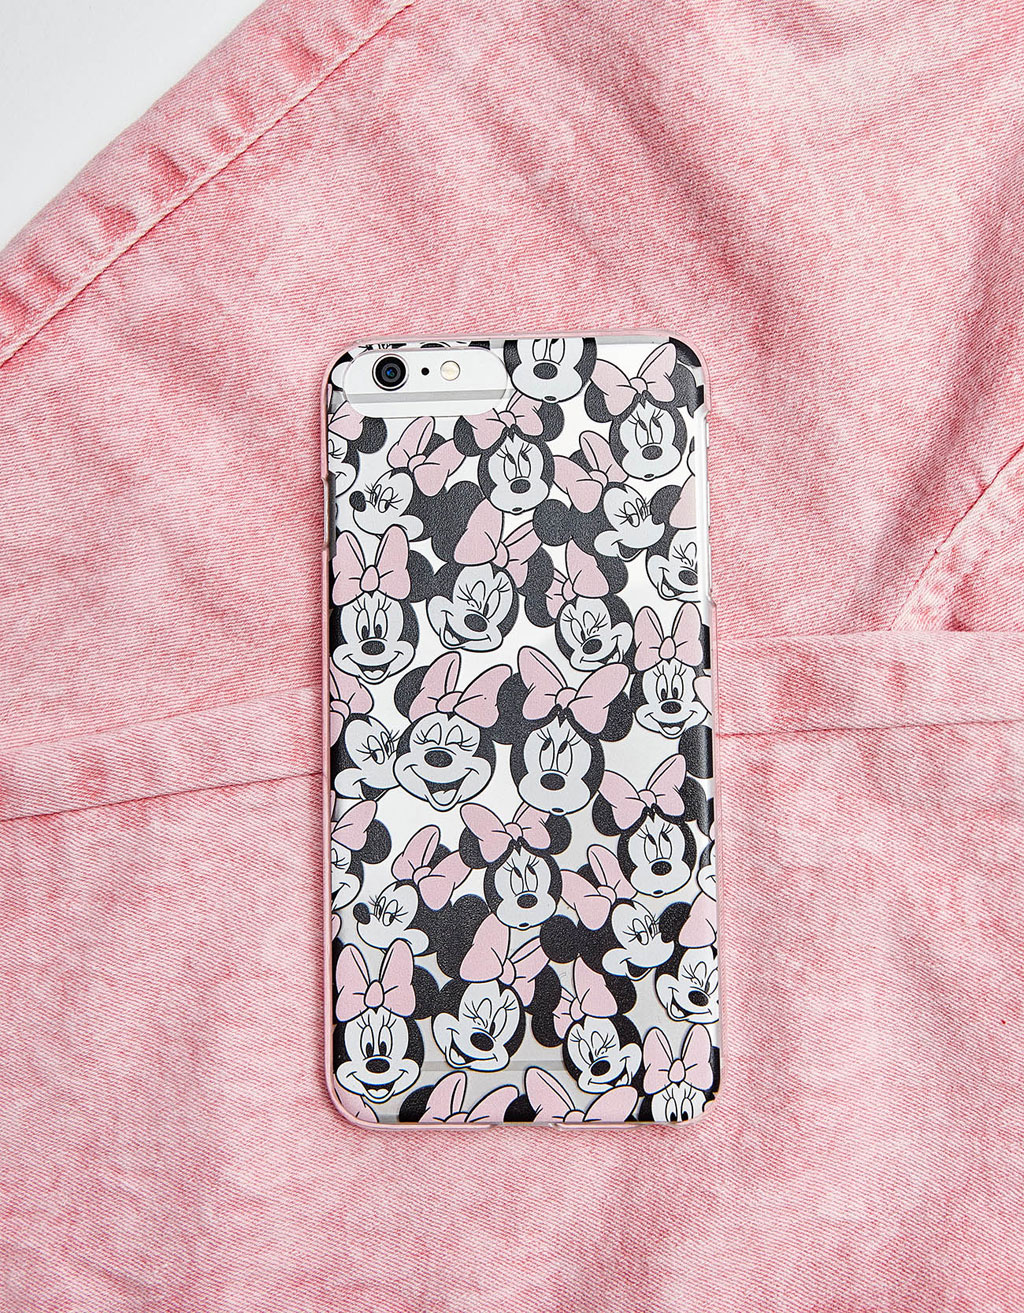 Carcasa caras Minnie iPhone 6 Plus/7 Plus